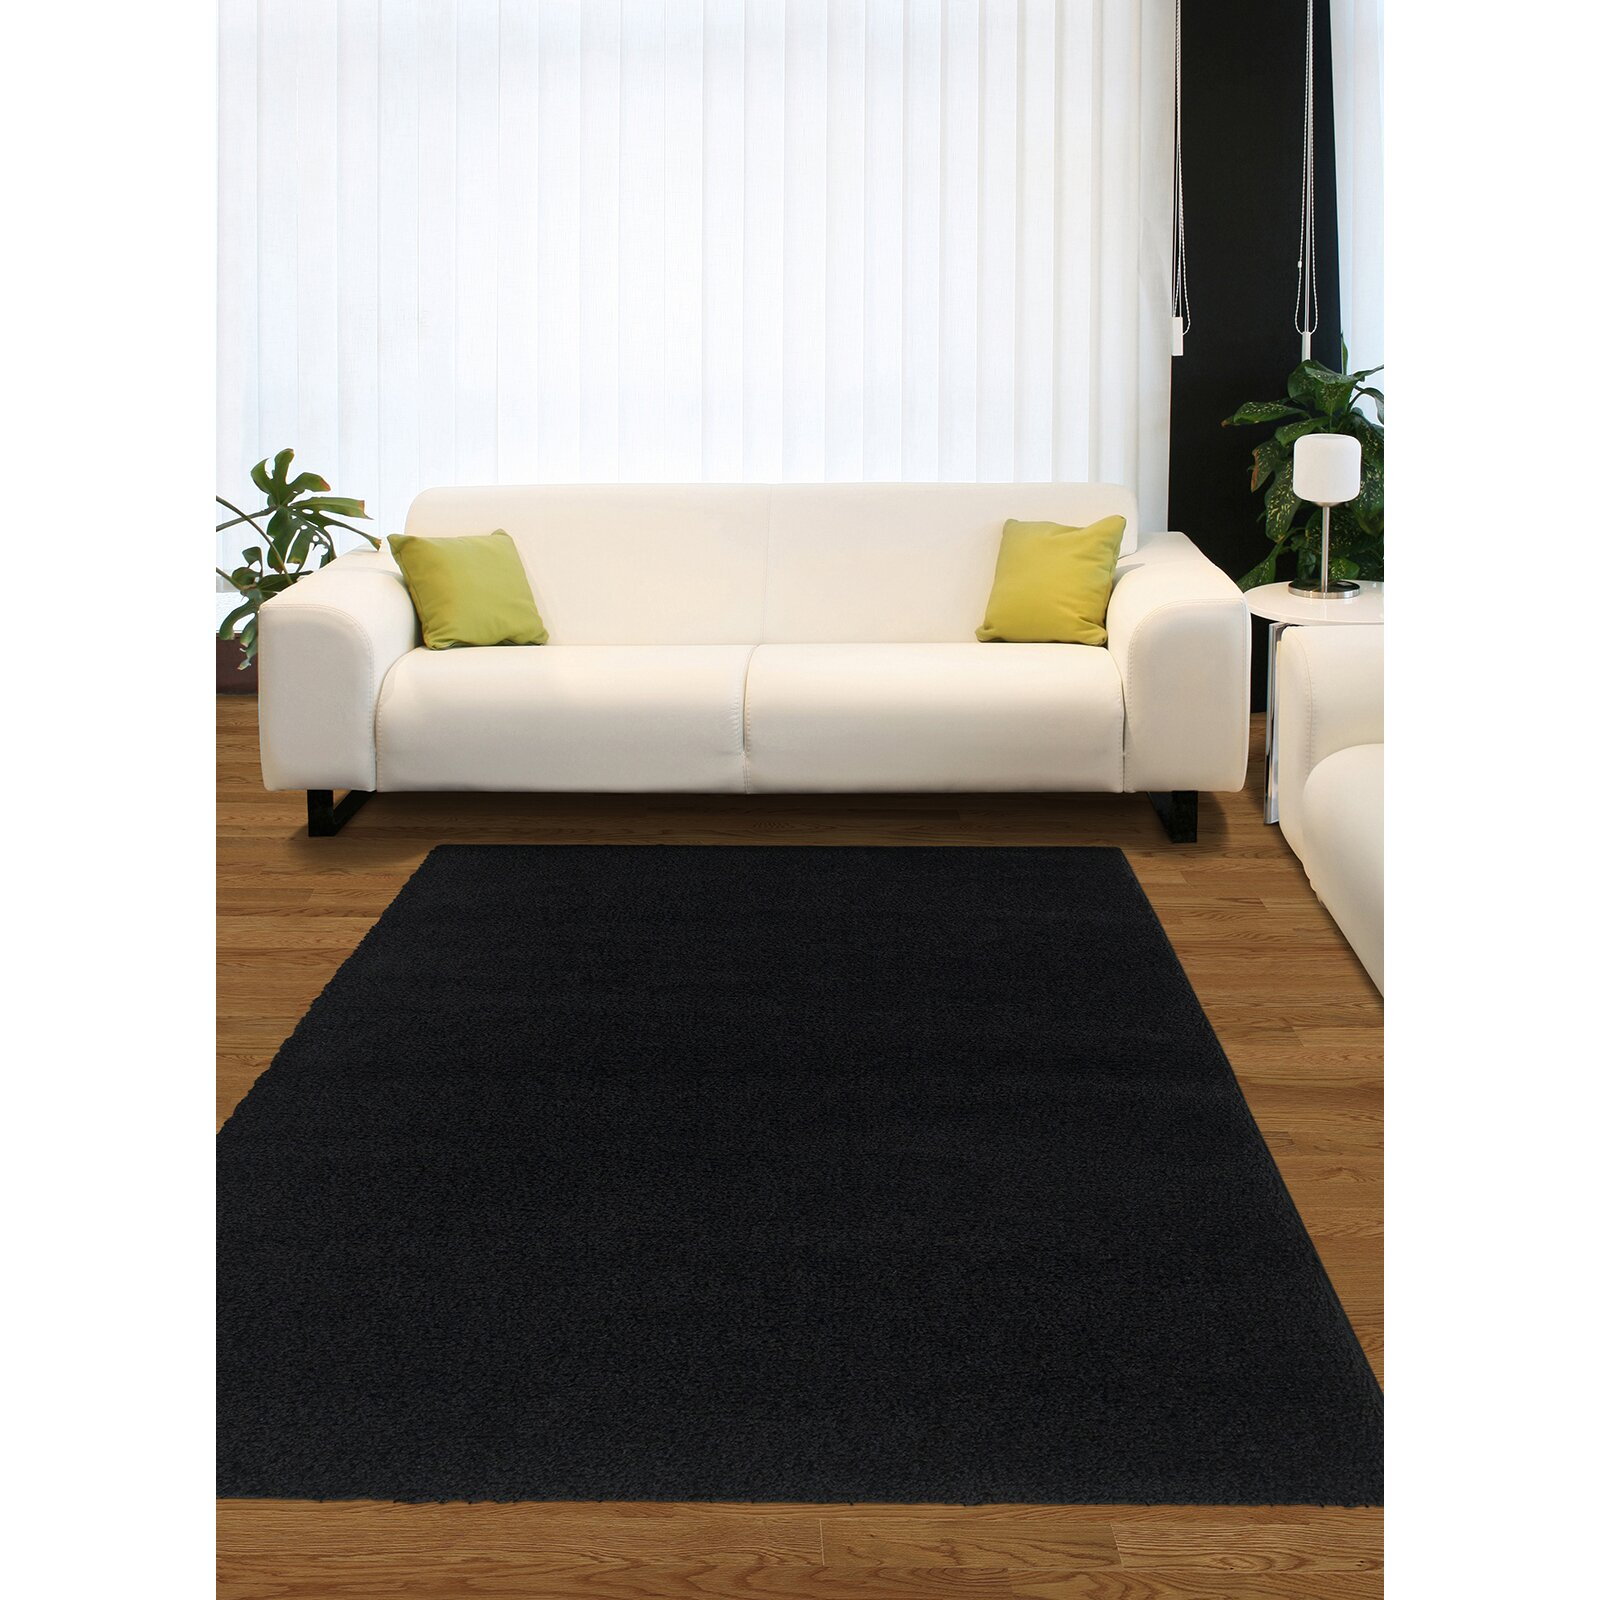 Garland Rug Southpointe Shag Black Area Rug Reviews Wayfair